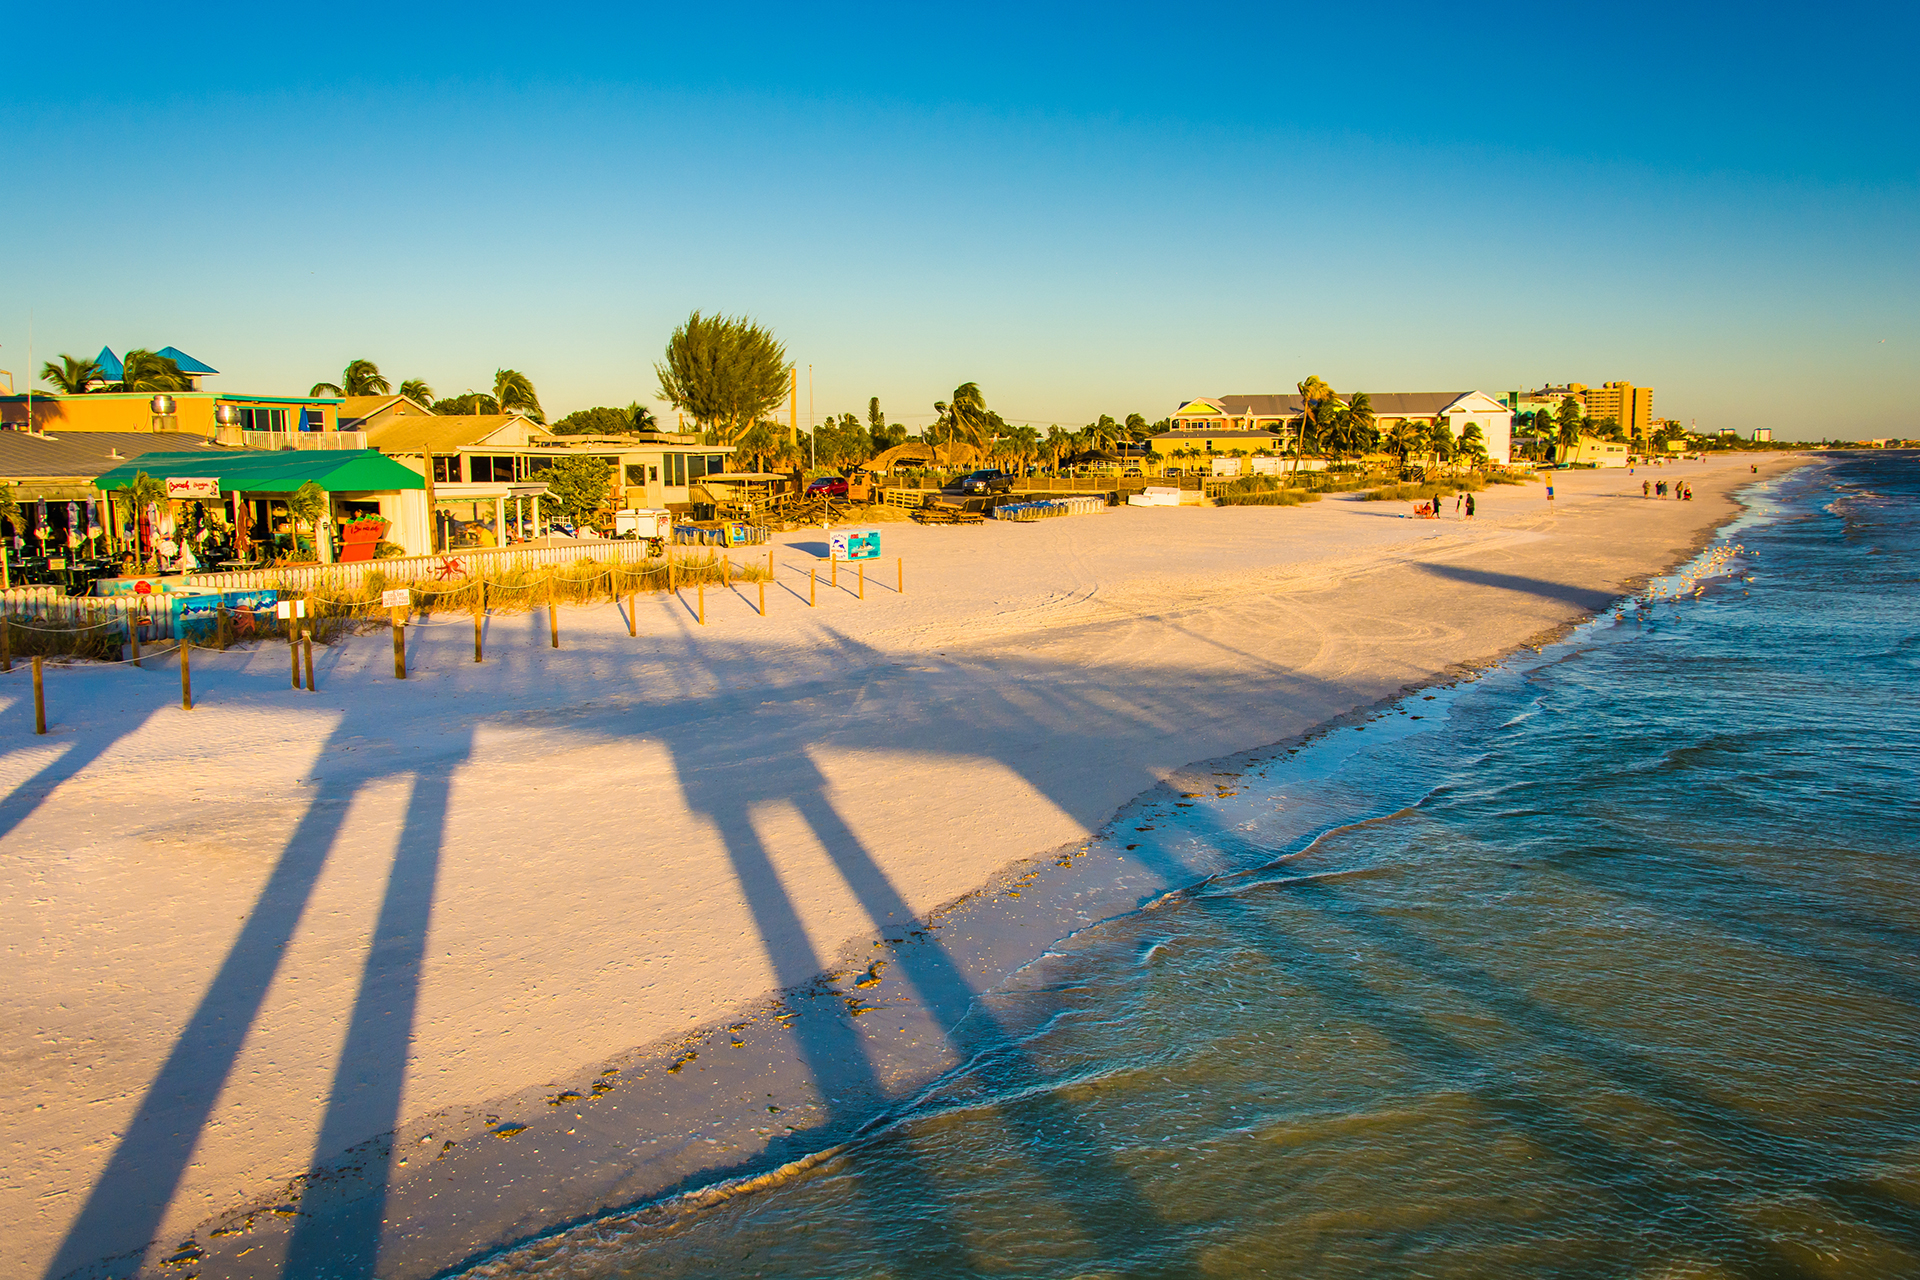 Many Fort Myers Beach Resorts Offer Everything The Destination Features Itselfà â Unspoiled Old Florida Watersports Rule Day As Do Sandcastle